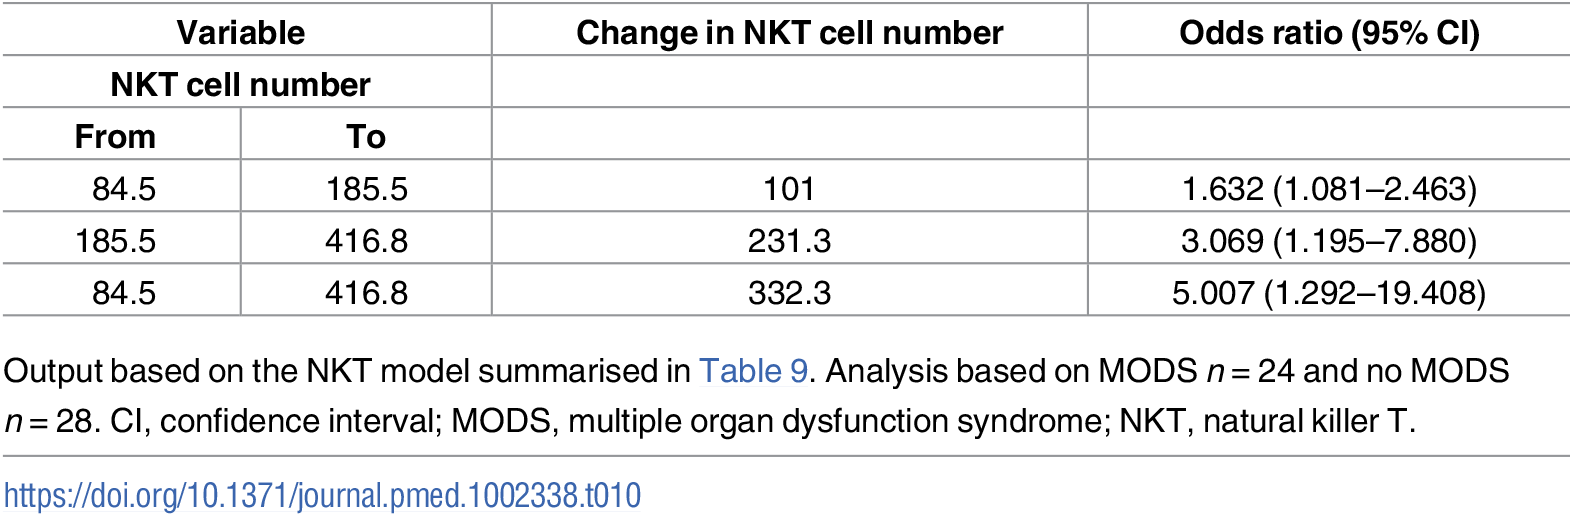 Illustrative odds ratios for development of MODS based on changes in values of NKT number.